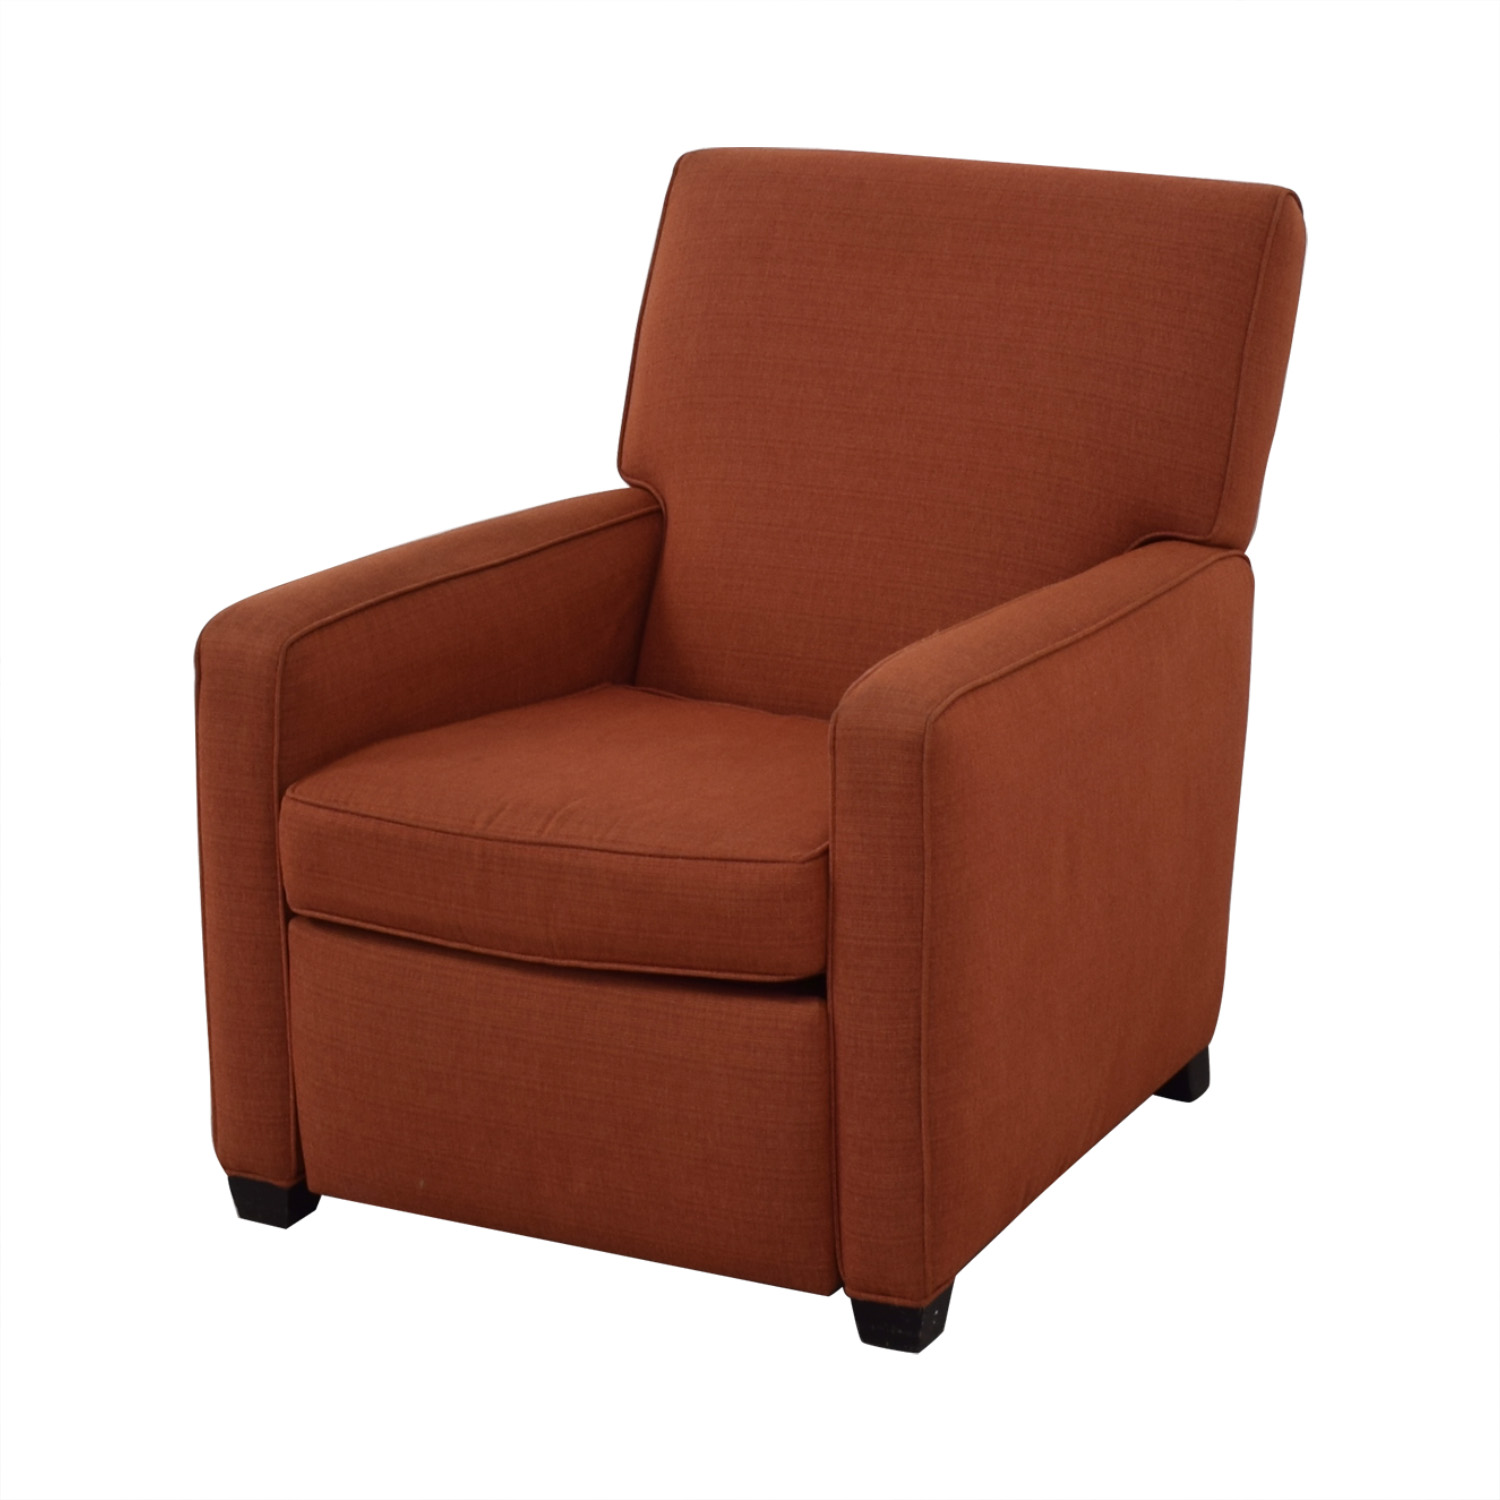 Mitchell Gold + Bob Williams Mitchell Gold + Bob Williams Recliner Chair for sale